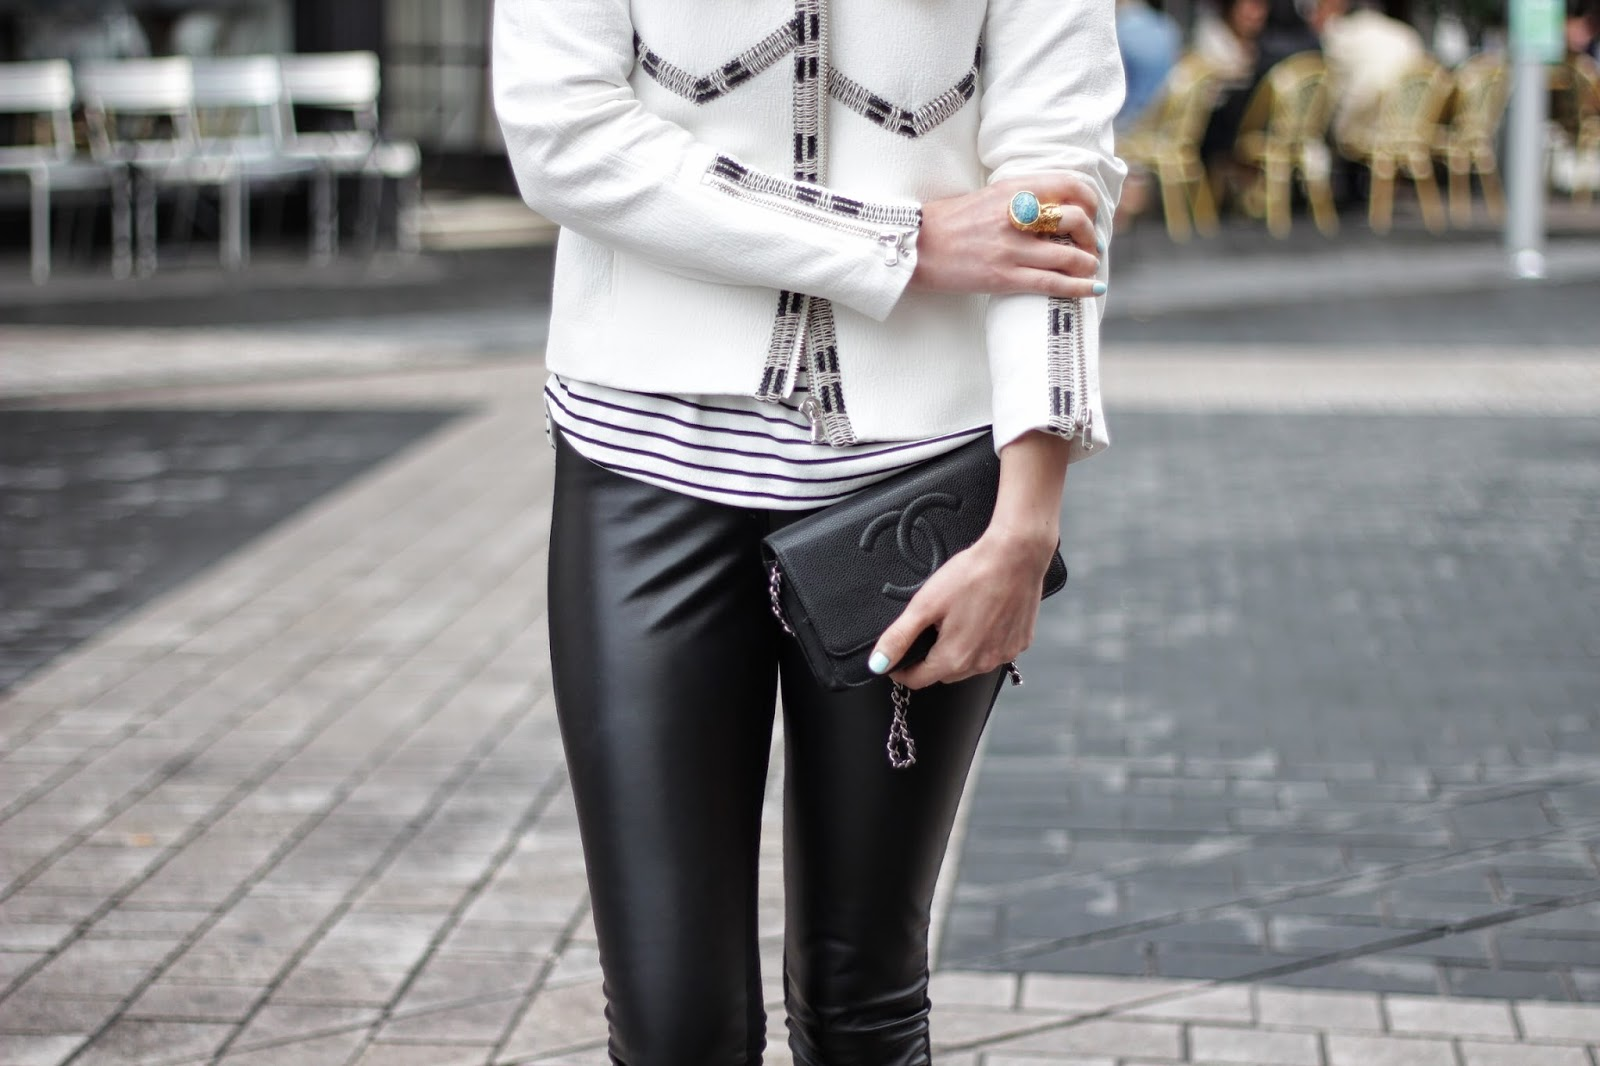 ysl ring, ysl arty ring, saint laurent, saint laurent ring, saint laurent accessorie, chanel bag, chanel clutch, leather leggings, white jacket, striped jumper, breton stripes